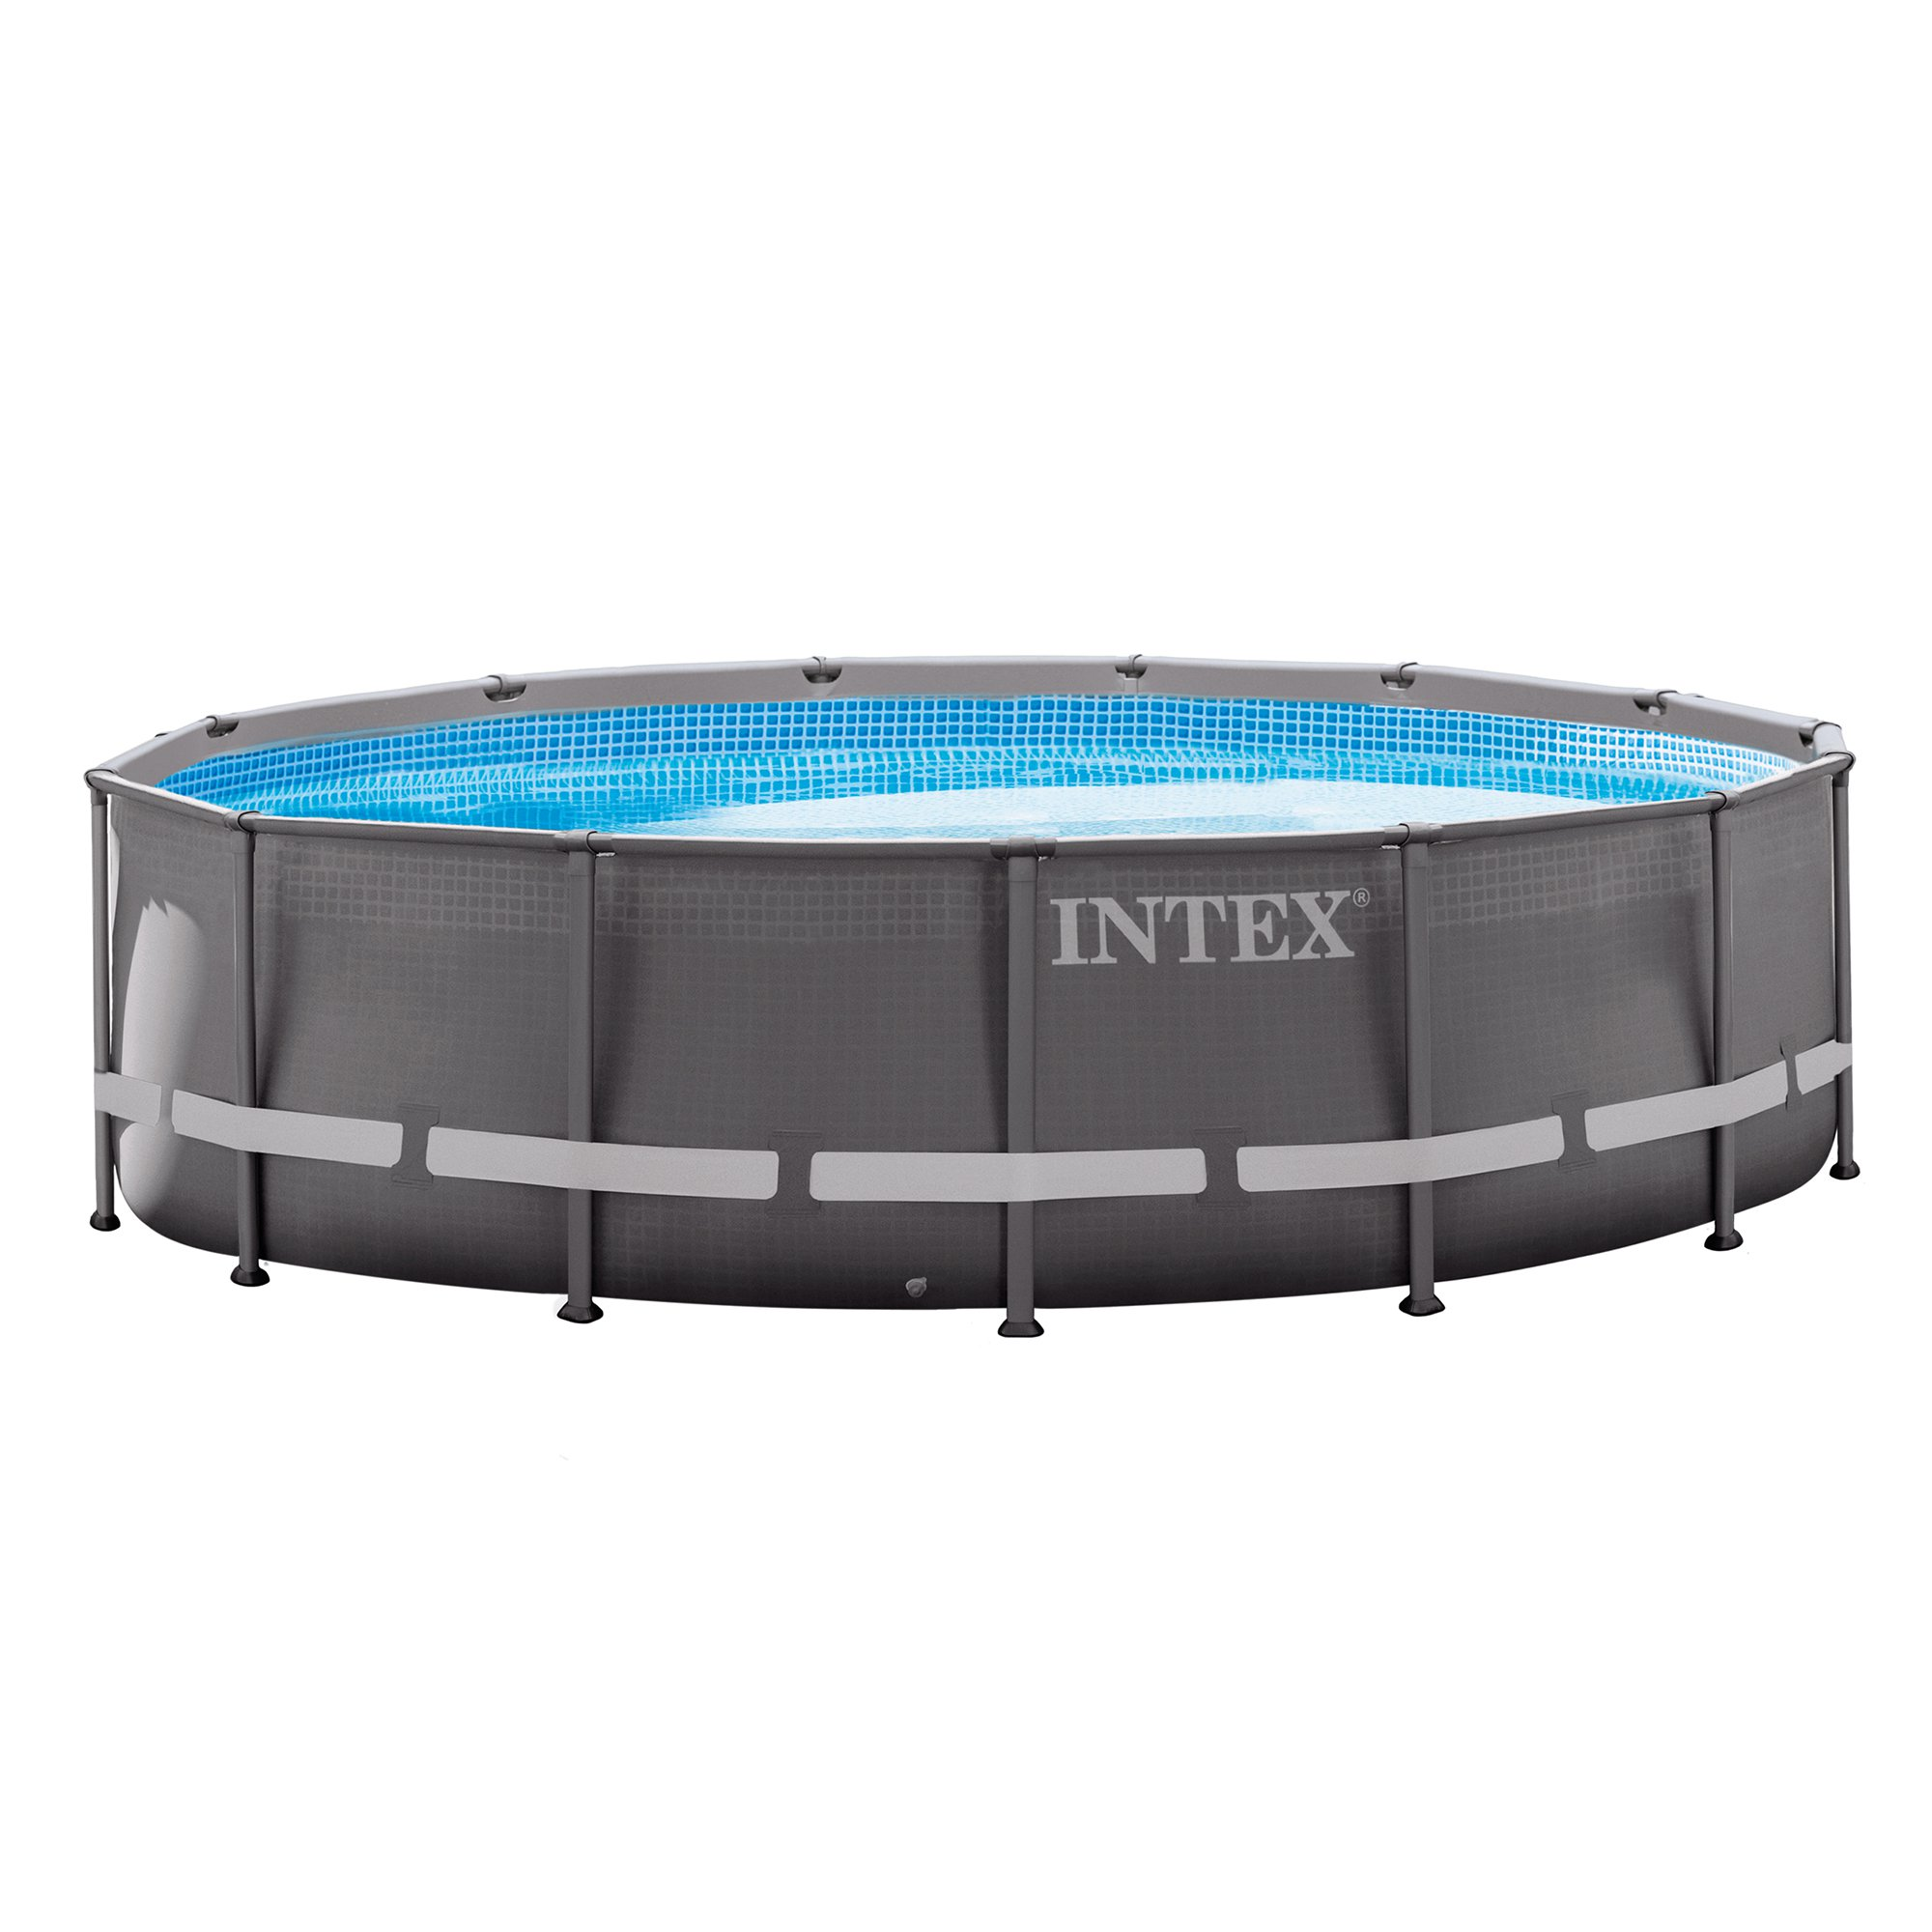 "Intex 14' x 42"" Ultra Frame Above Ground Swimming Pool with Filter Pump by Intex"